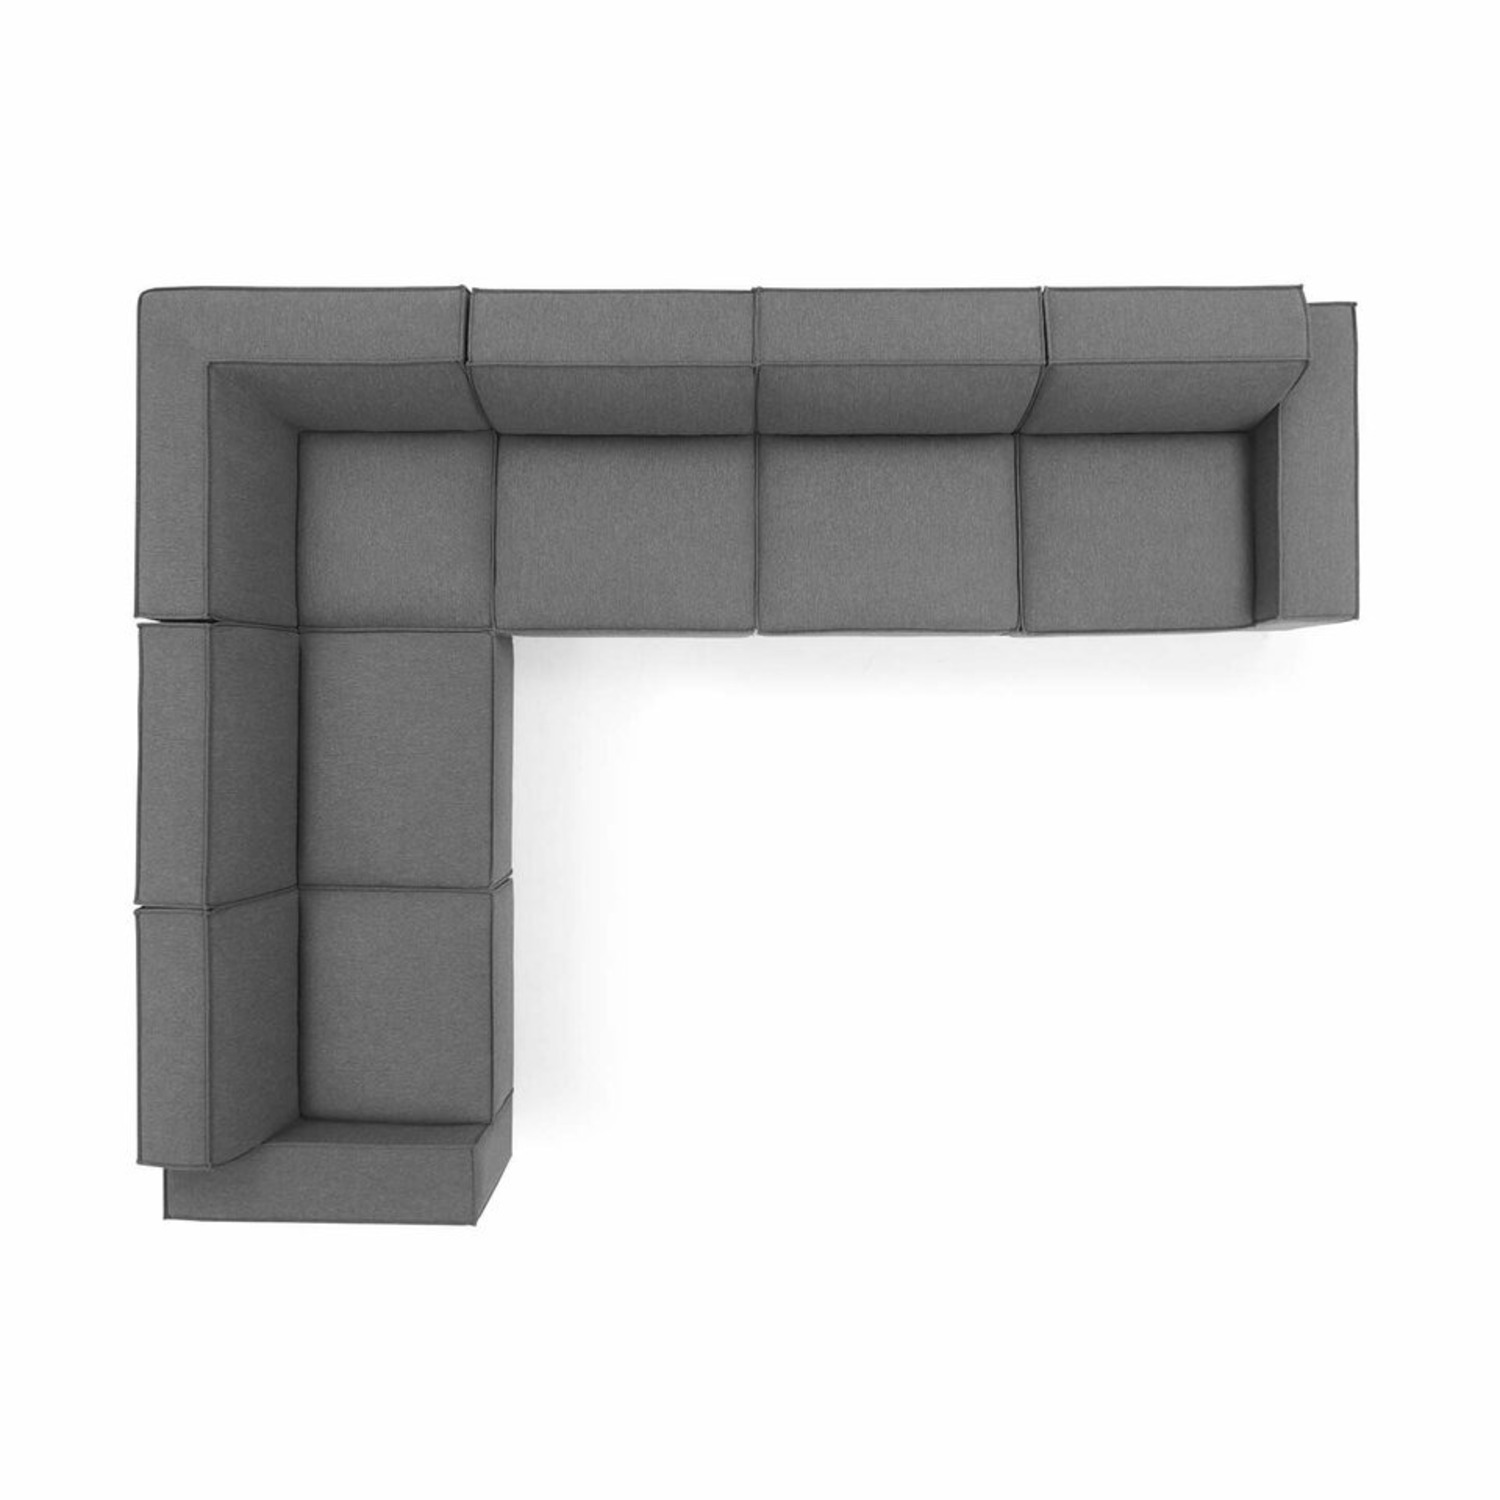 6Piece Sectional Sofa In Charcoal Polyester Fabric - image-1